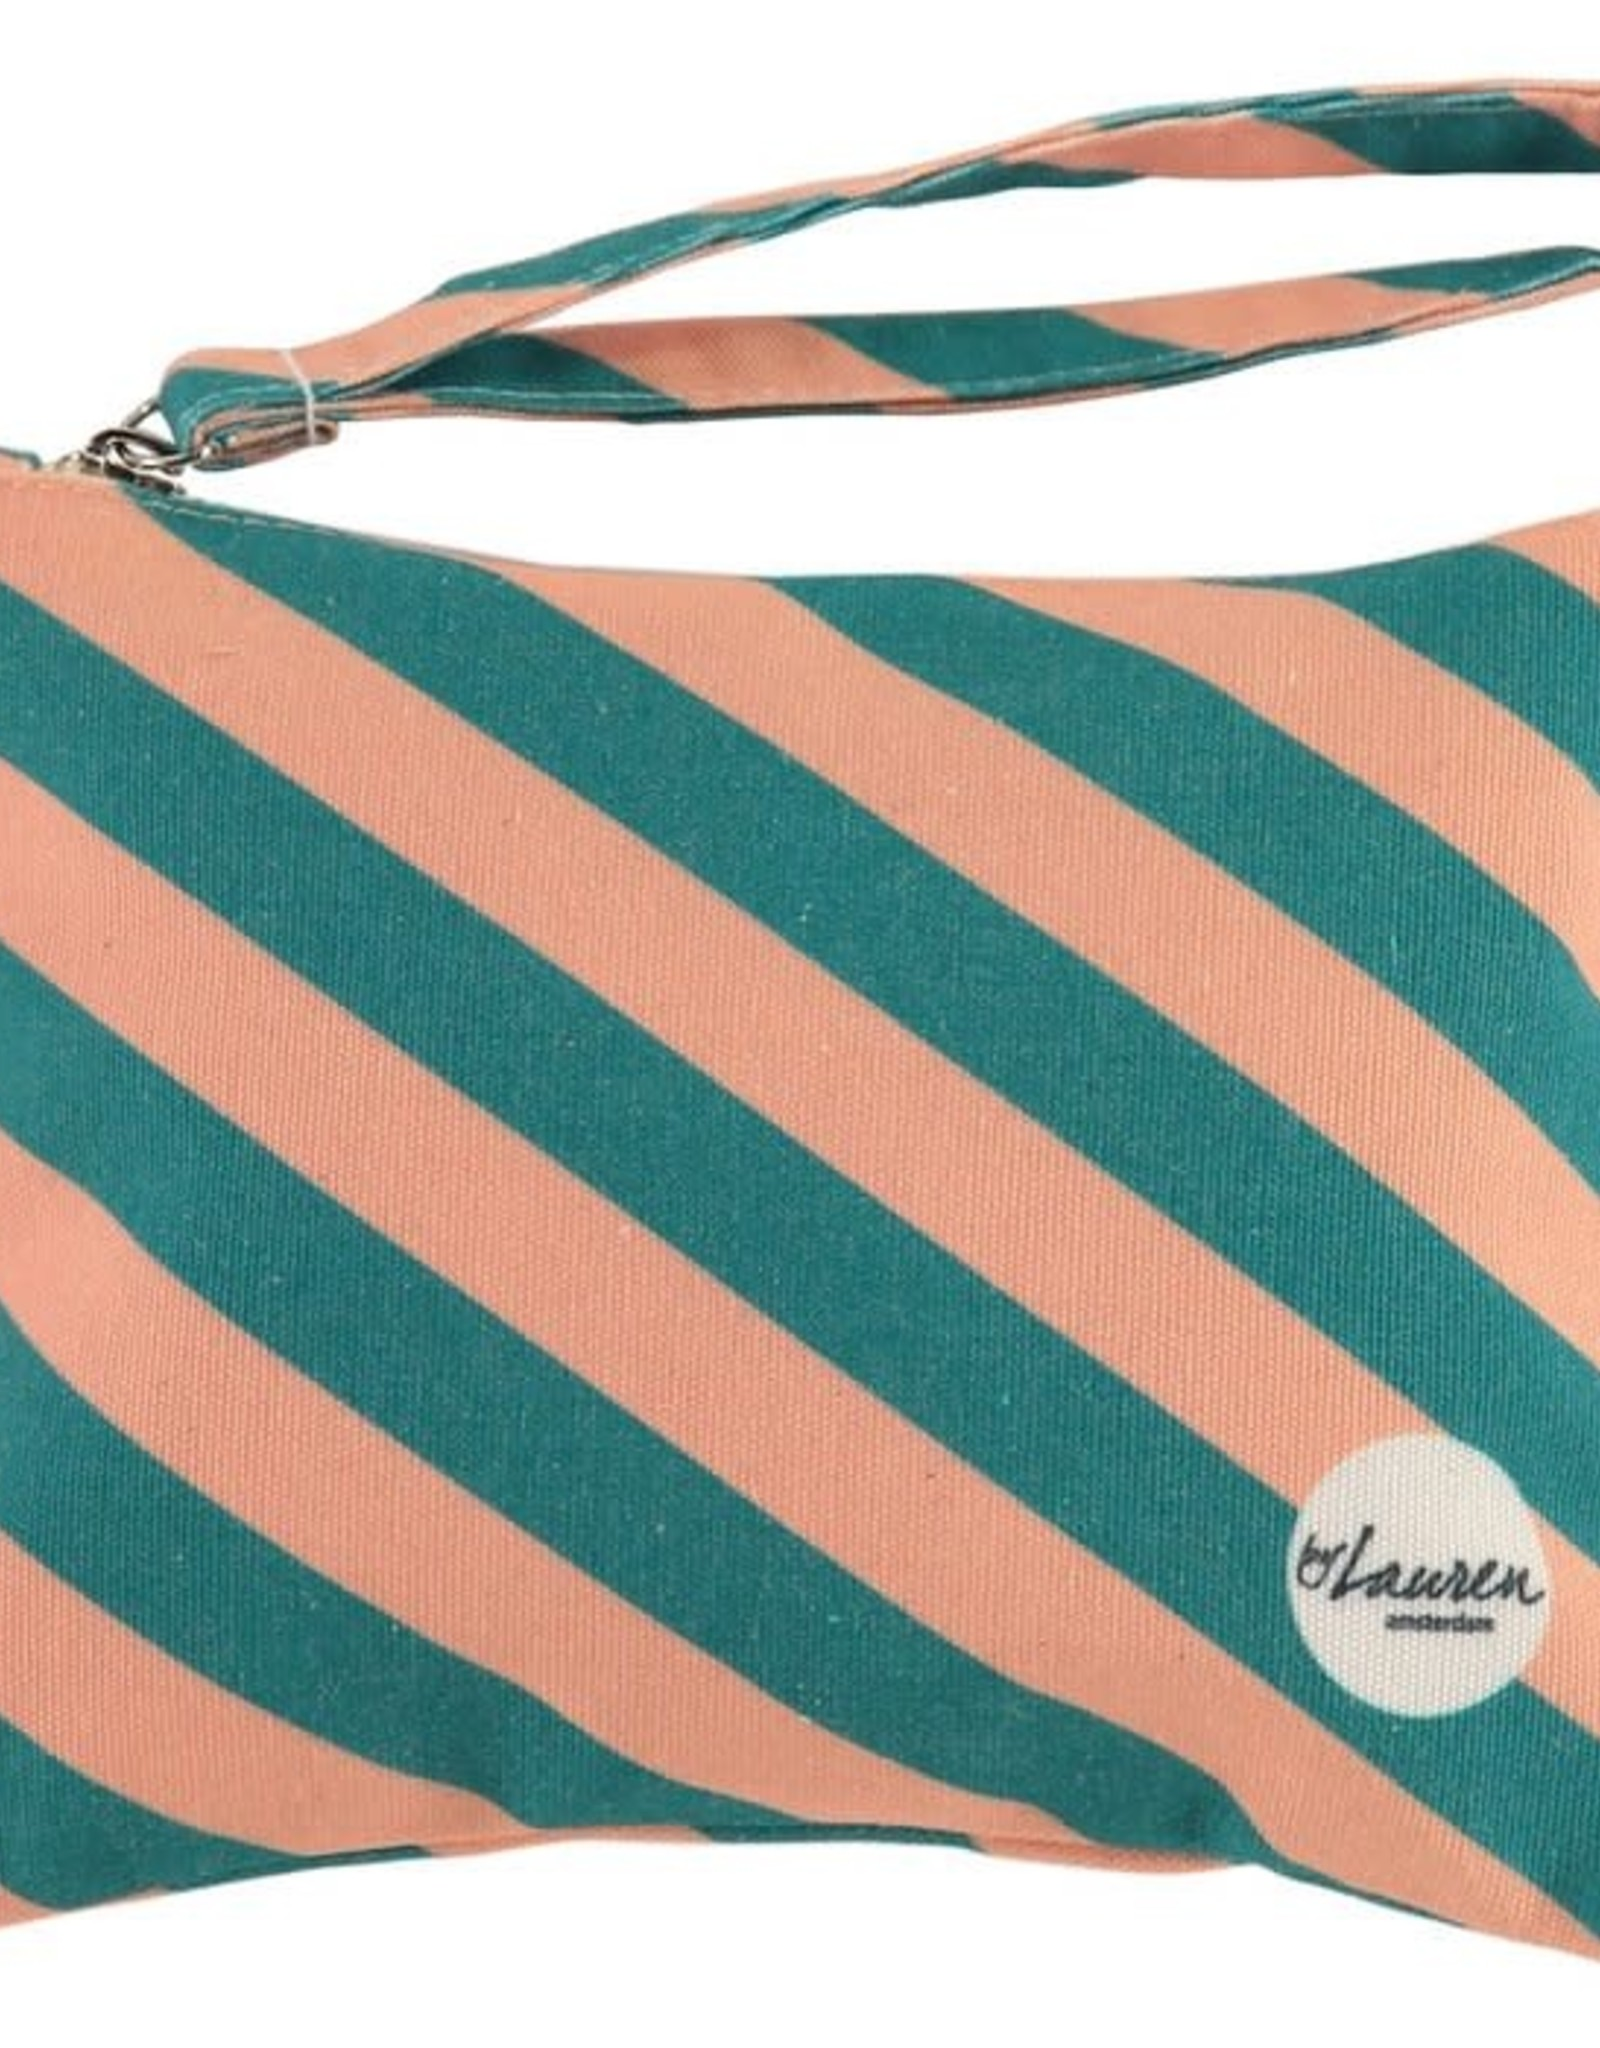 By lauren Amsterdam By Lauren Amsterdam we are stripes green pink clutch